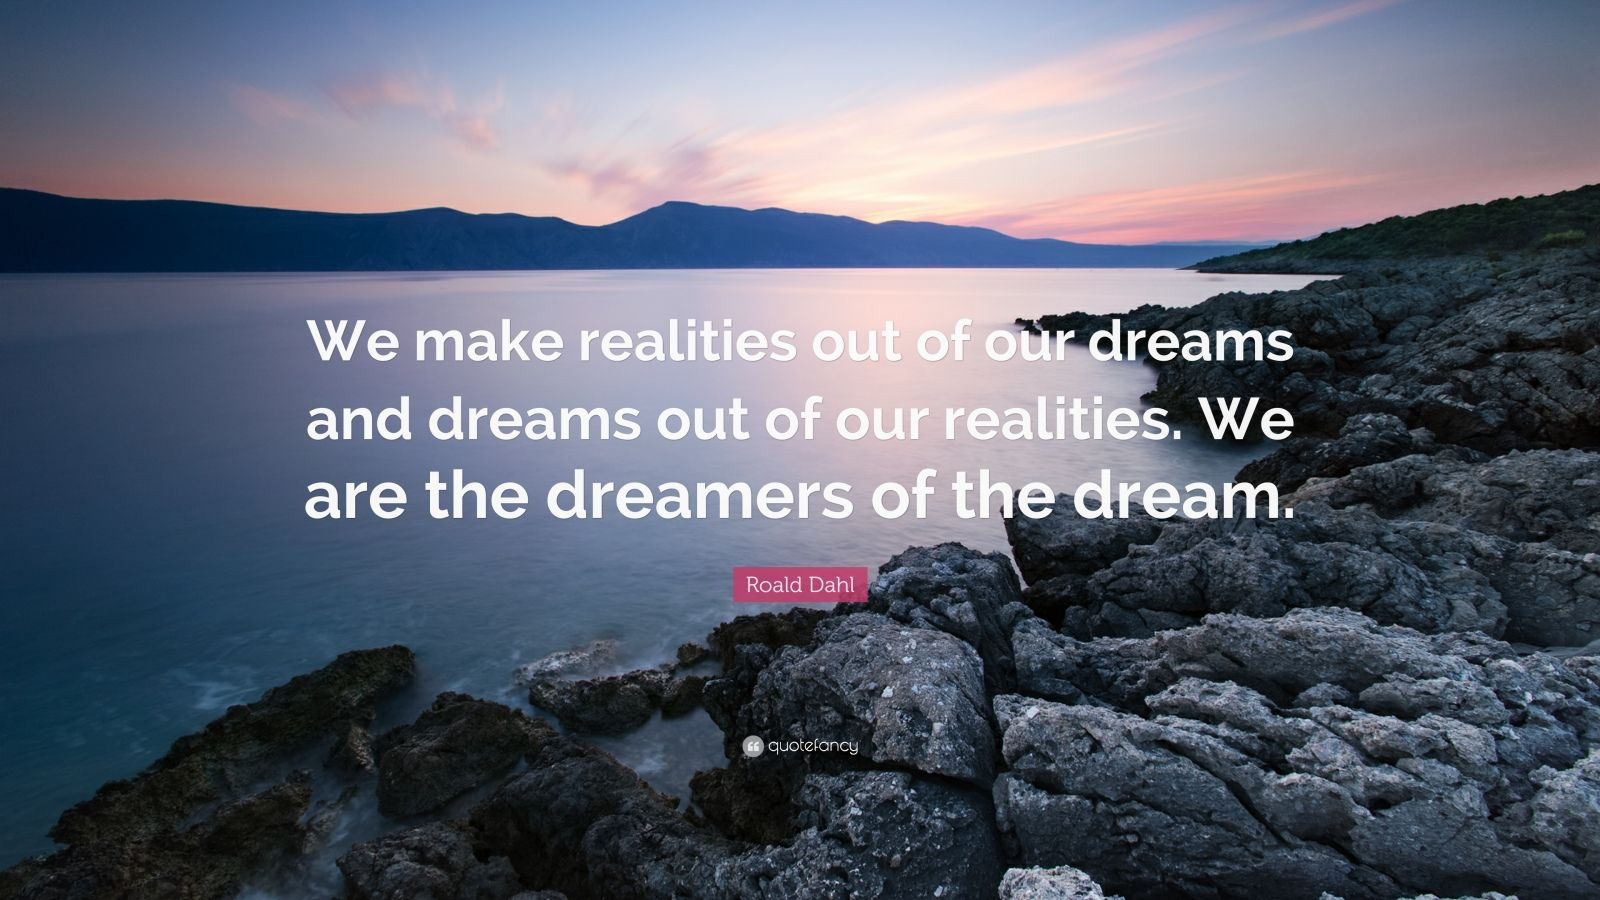 """Roald Dahl Quote: """"We make realities out of our dreams and dreams out of our realities. We are the dreamers of the dream."""""""